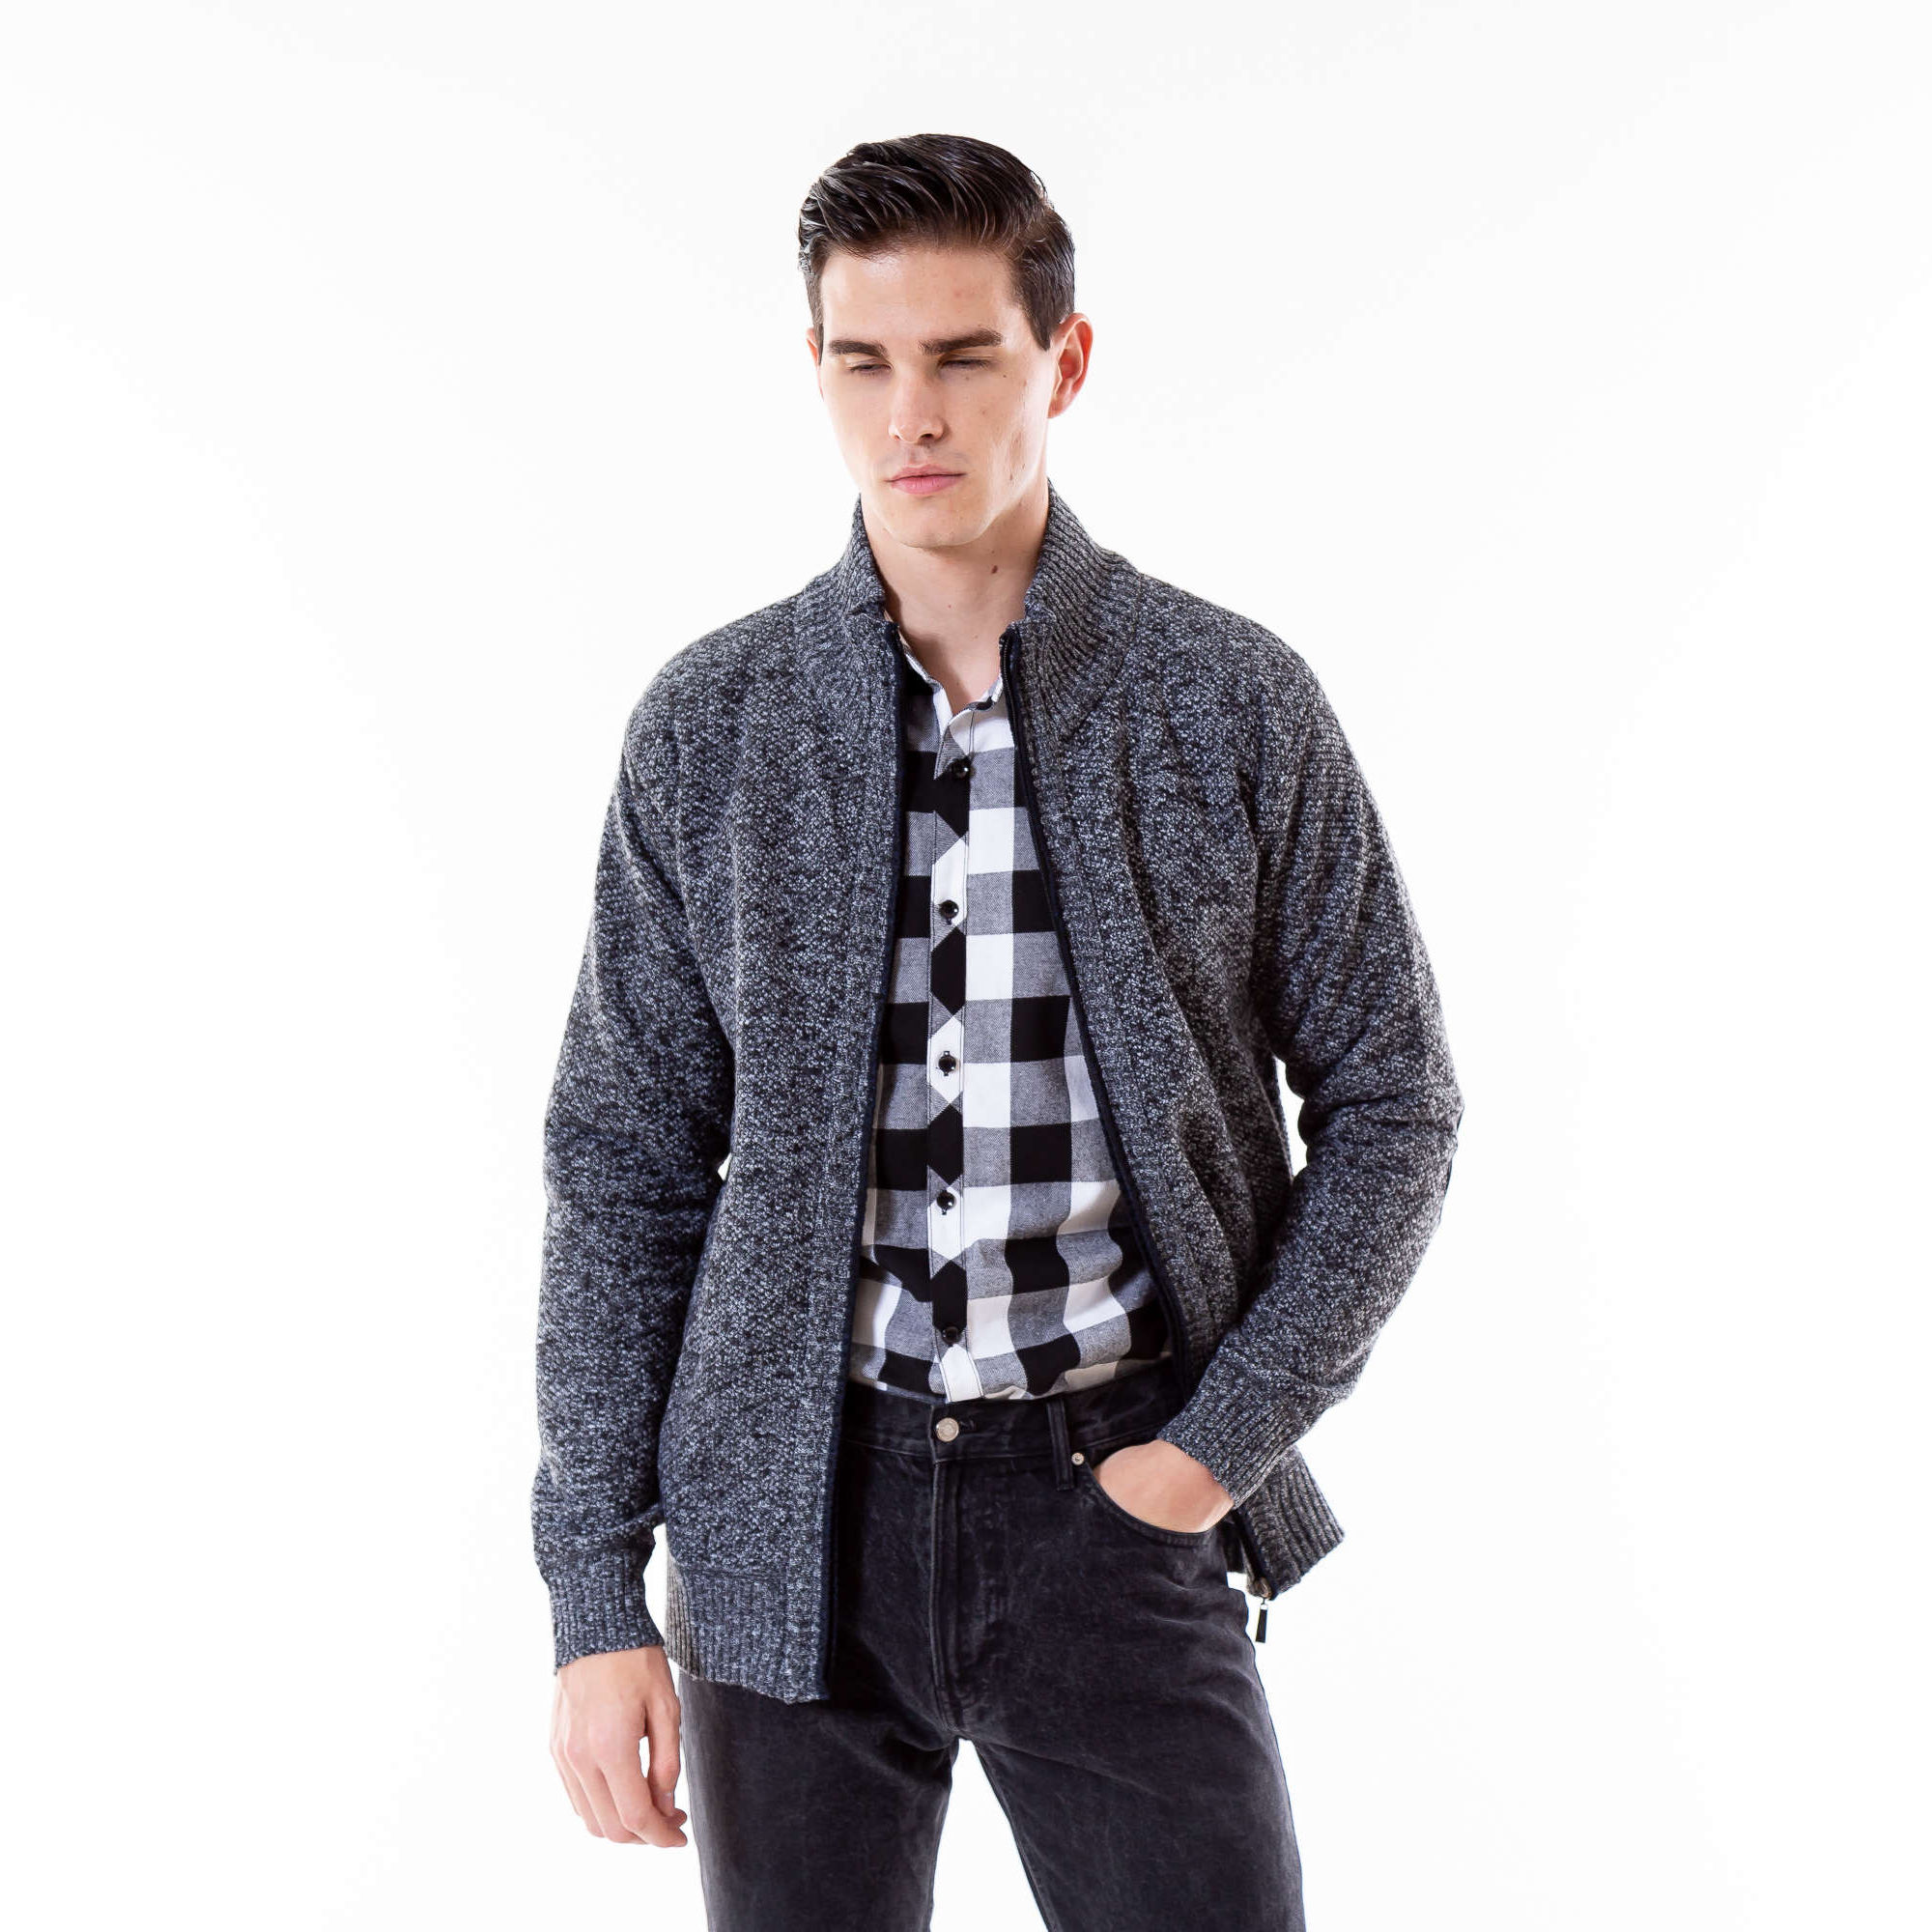 Cashmere Knitted Men's Sweaters Cardigan Autumn Zipper Knitting Sweater For Men